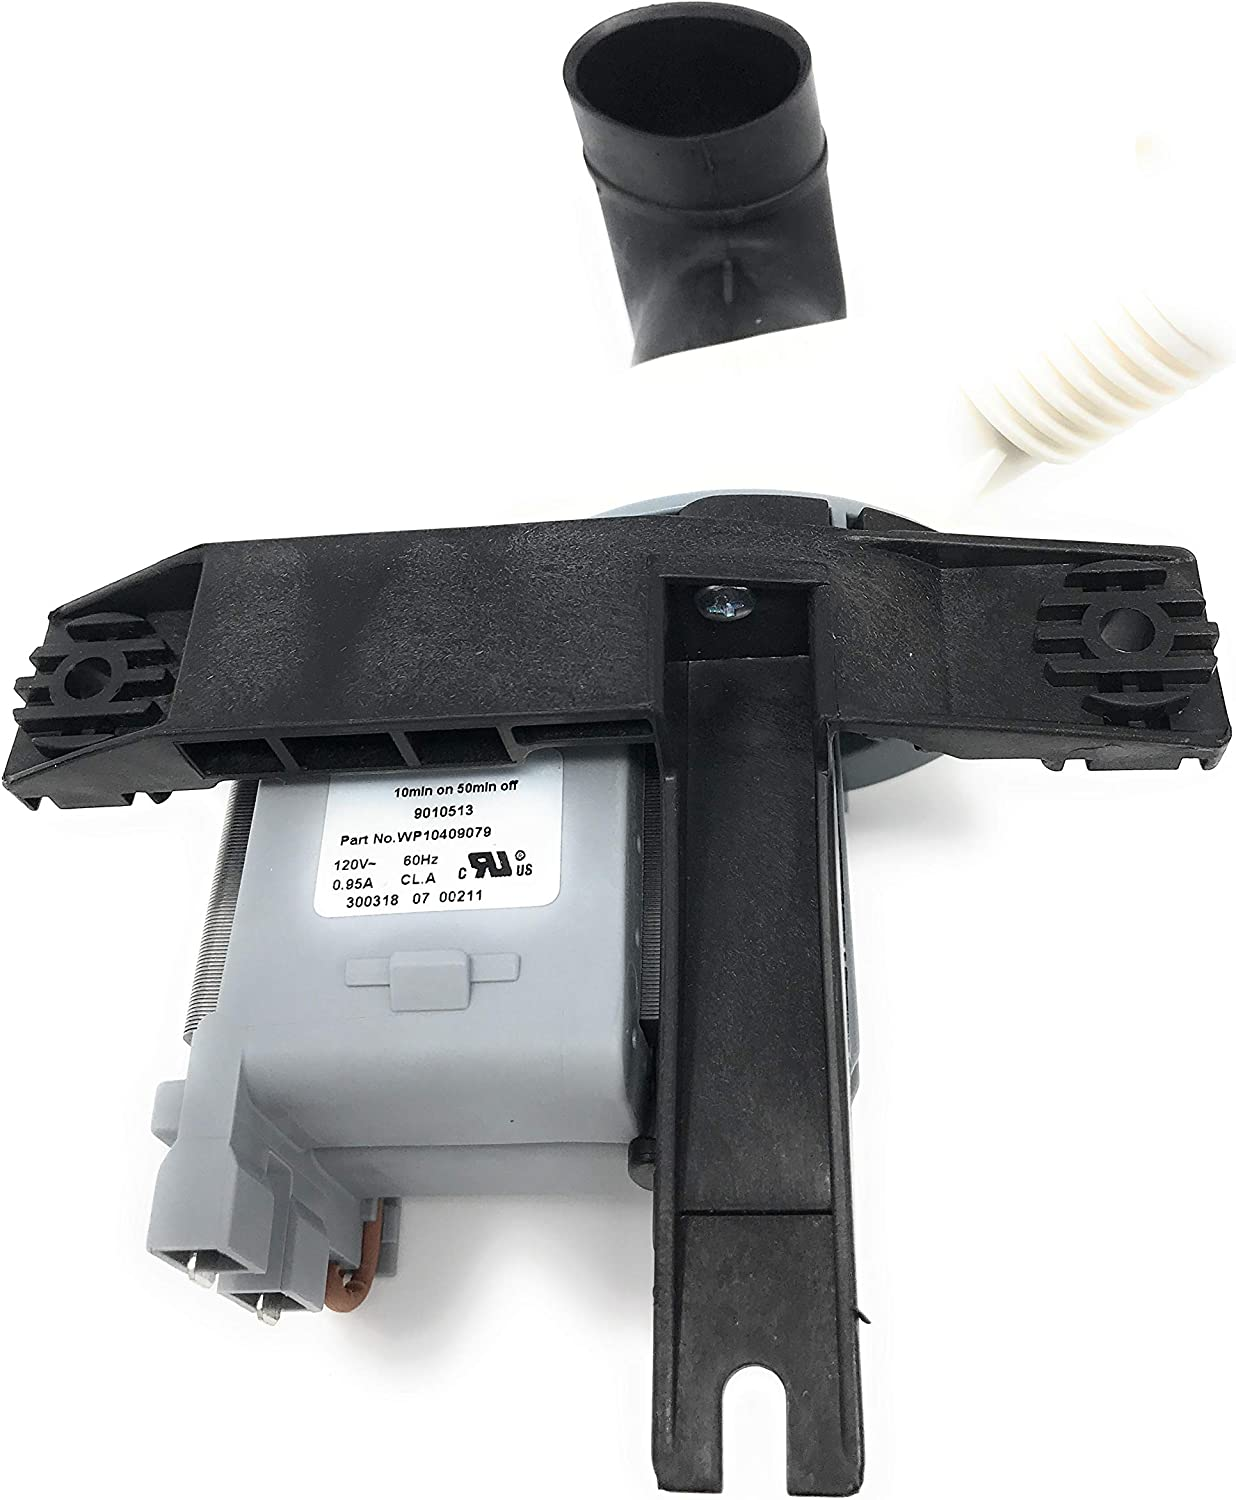 Replacement Pump for Whirlpool W10409079